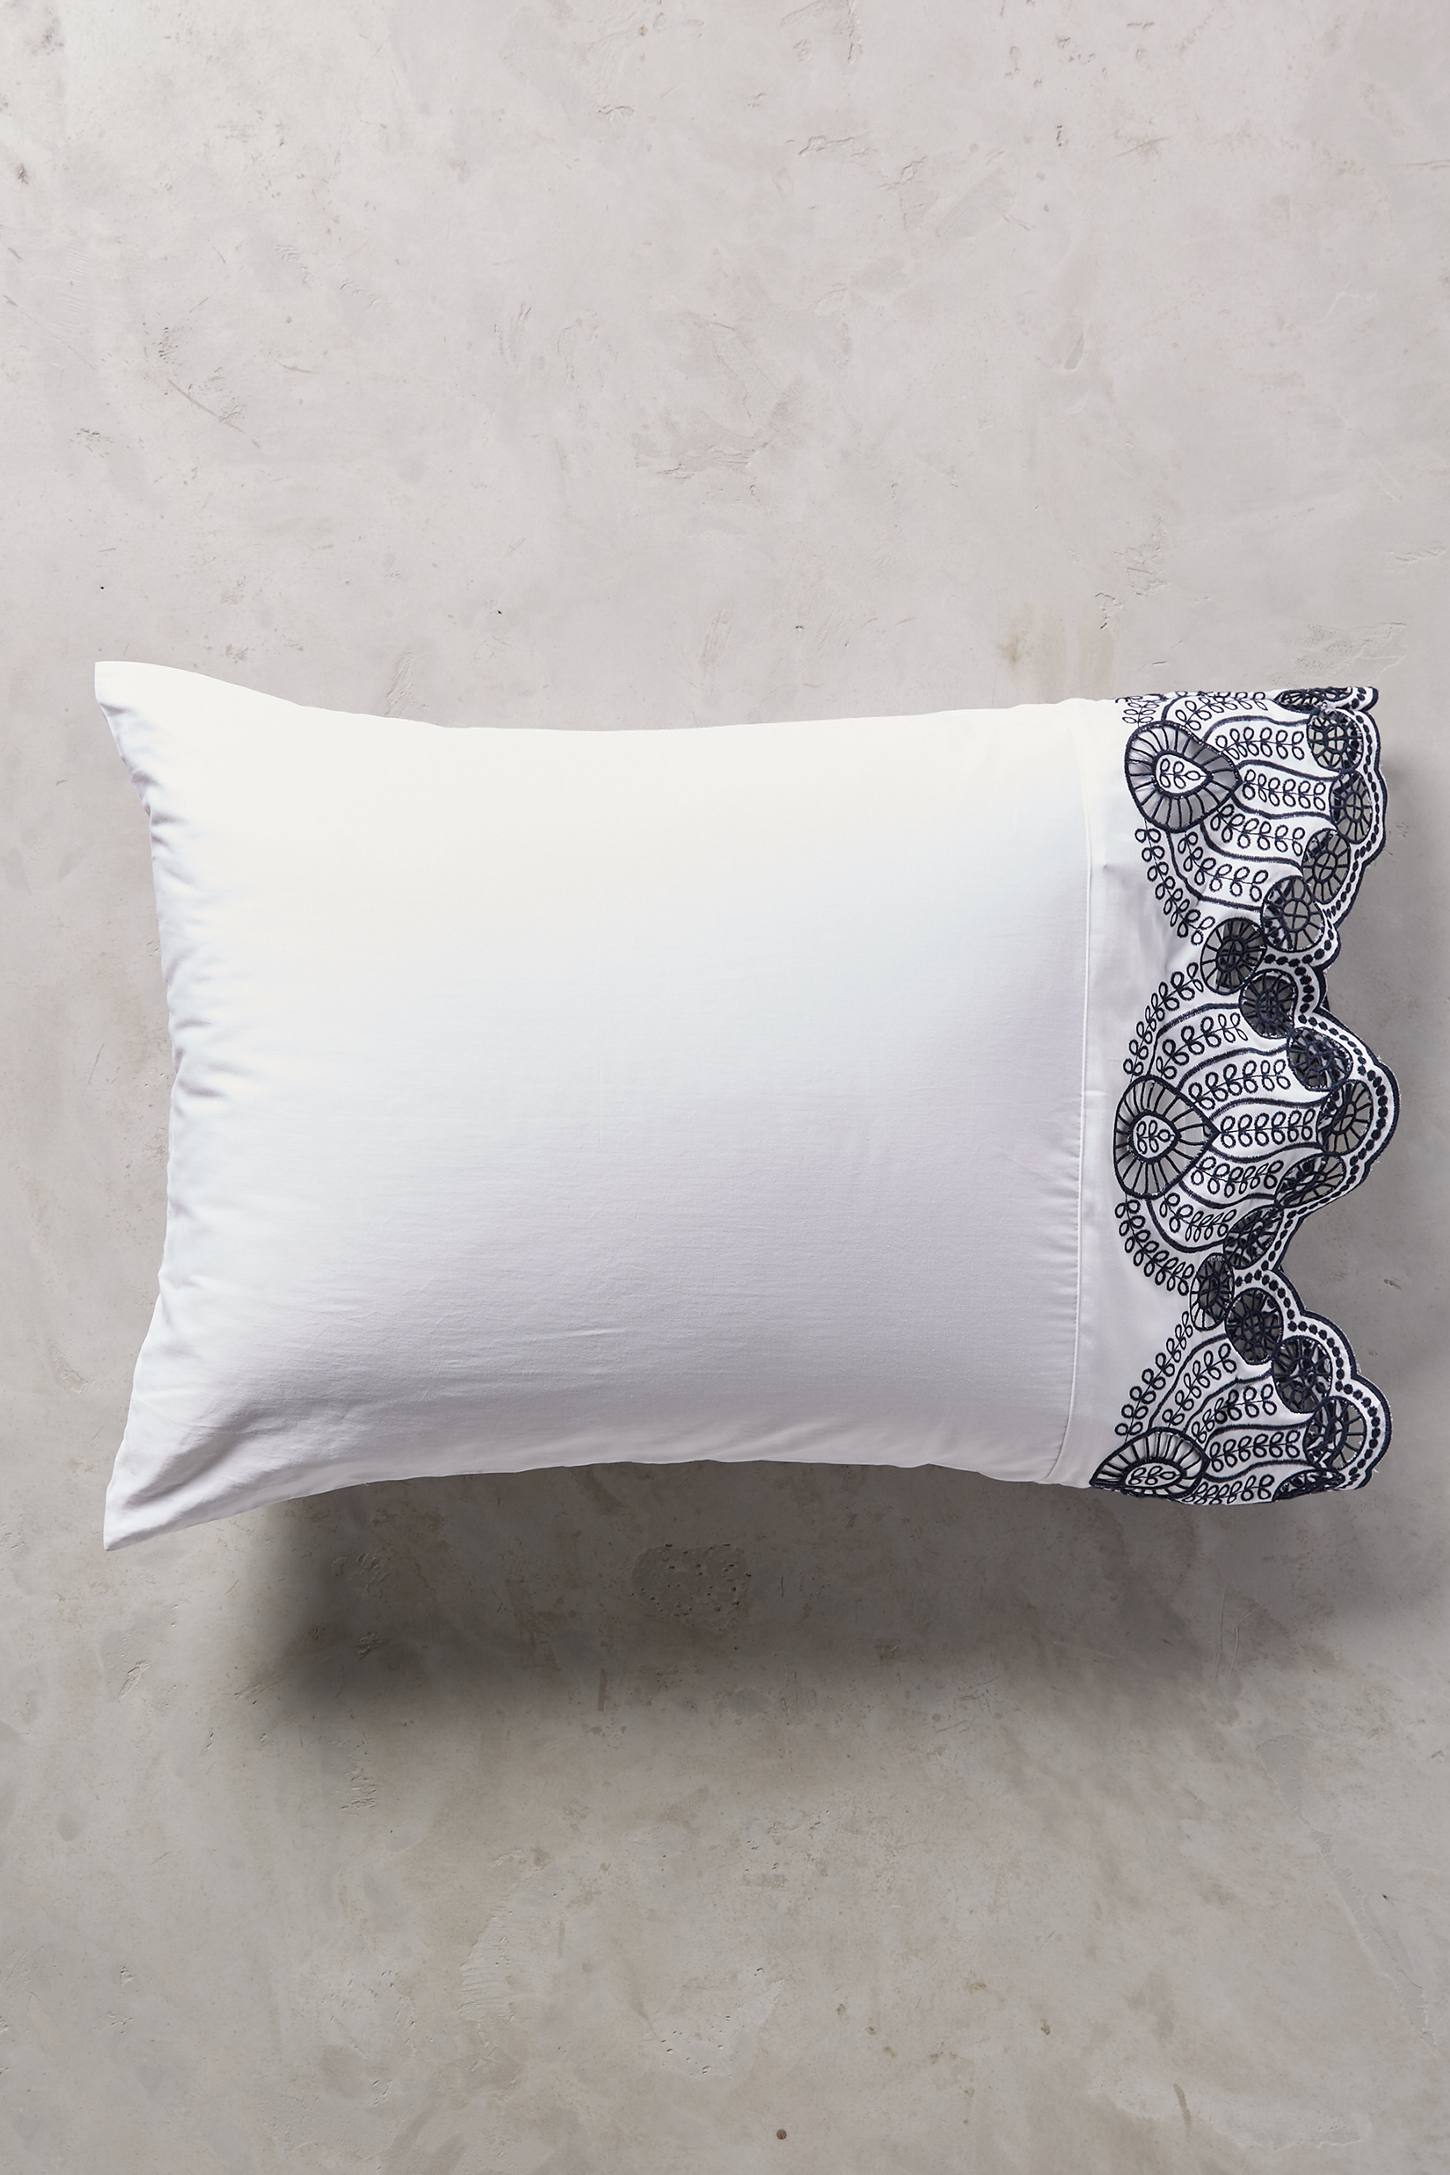 Slide View: 3: Eyelet Embroidered Sheet Set